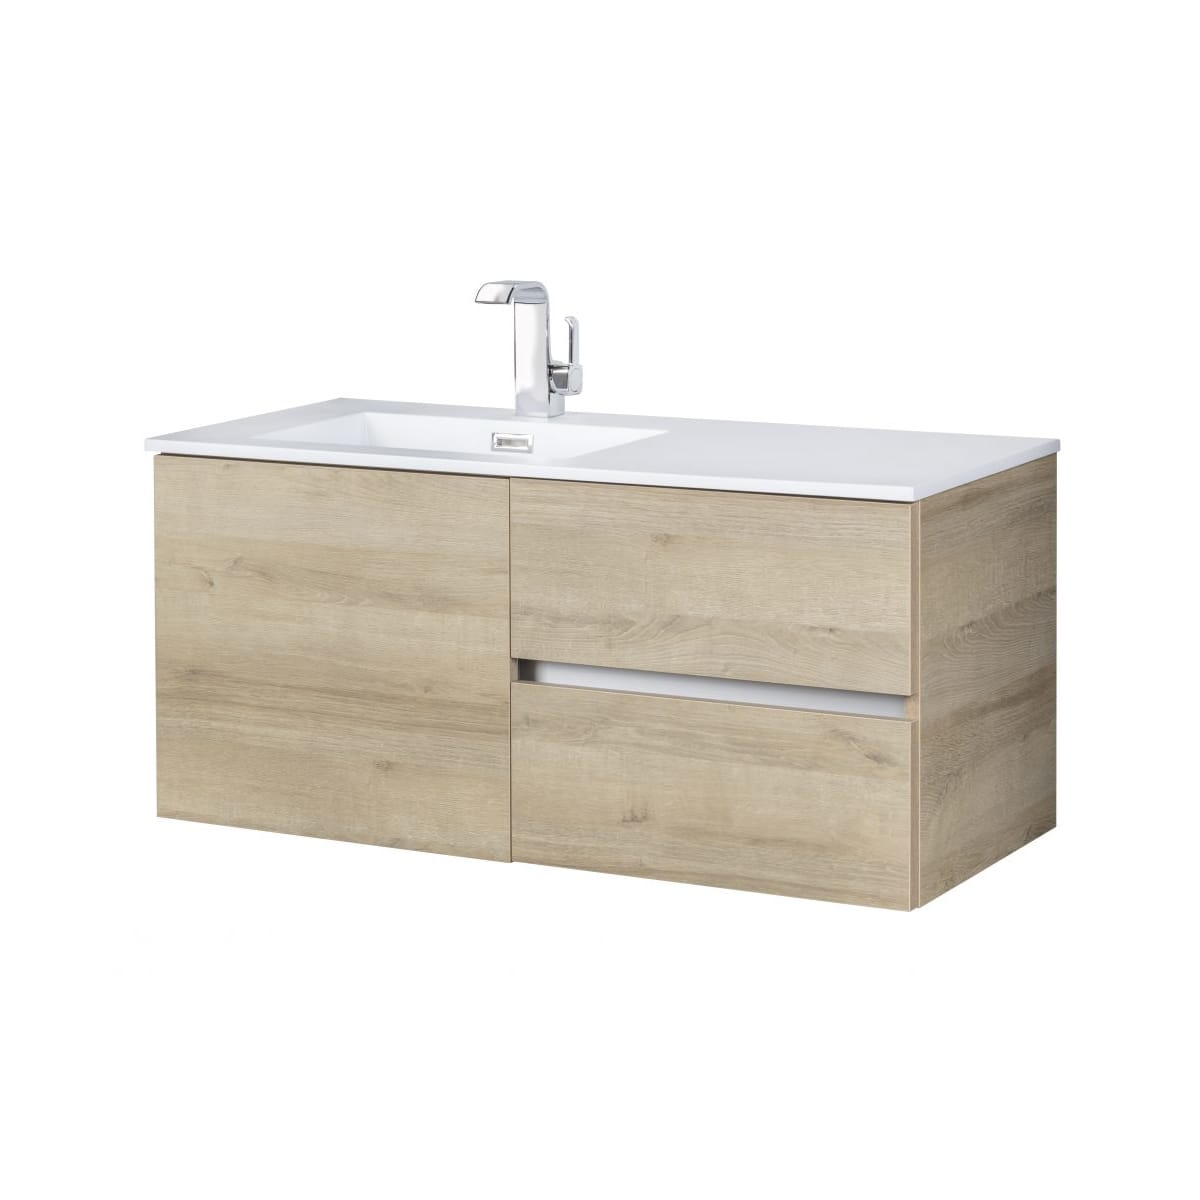 Cutler Kitchen And Bath Fv Bw Organic42 Organic Beachwood 42 Wall Mounted Floating Single Vanity Set With Acrylic Vanity Top Faucet Com